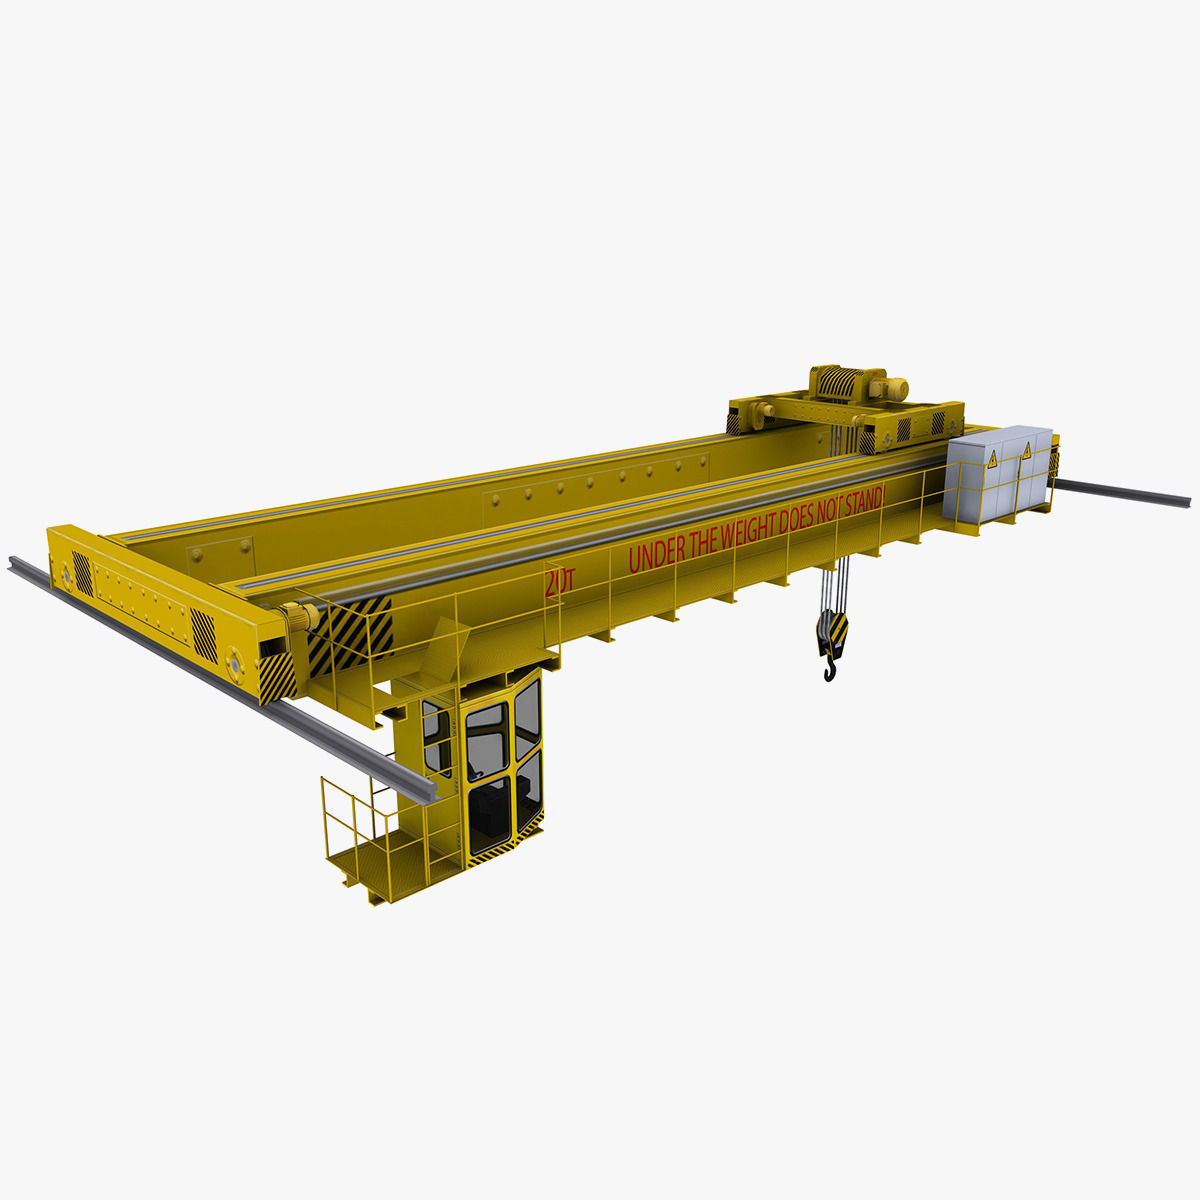 Obsolete Overhead Crane Parts : Overhead crane parts description pictures to pin on